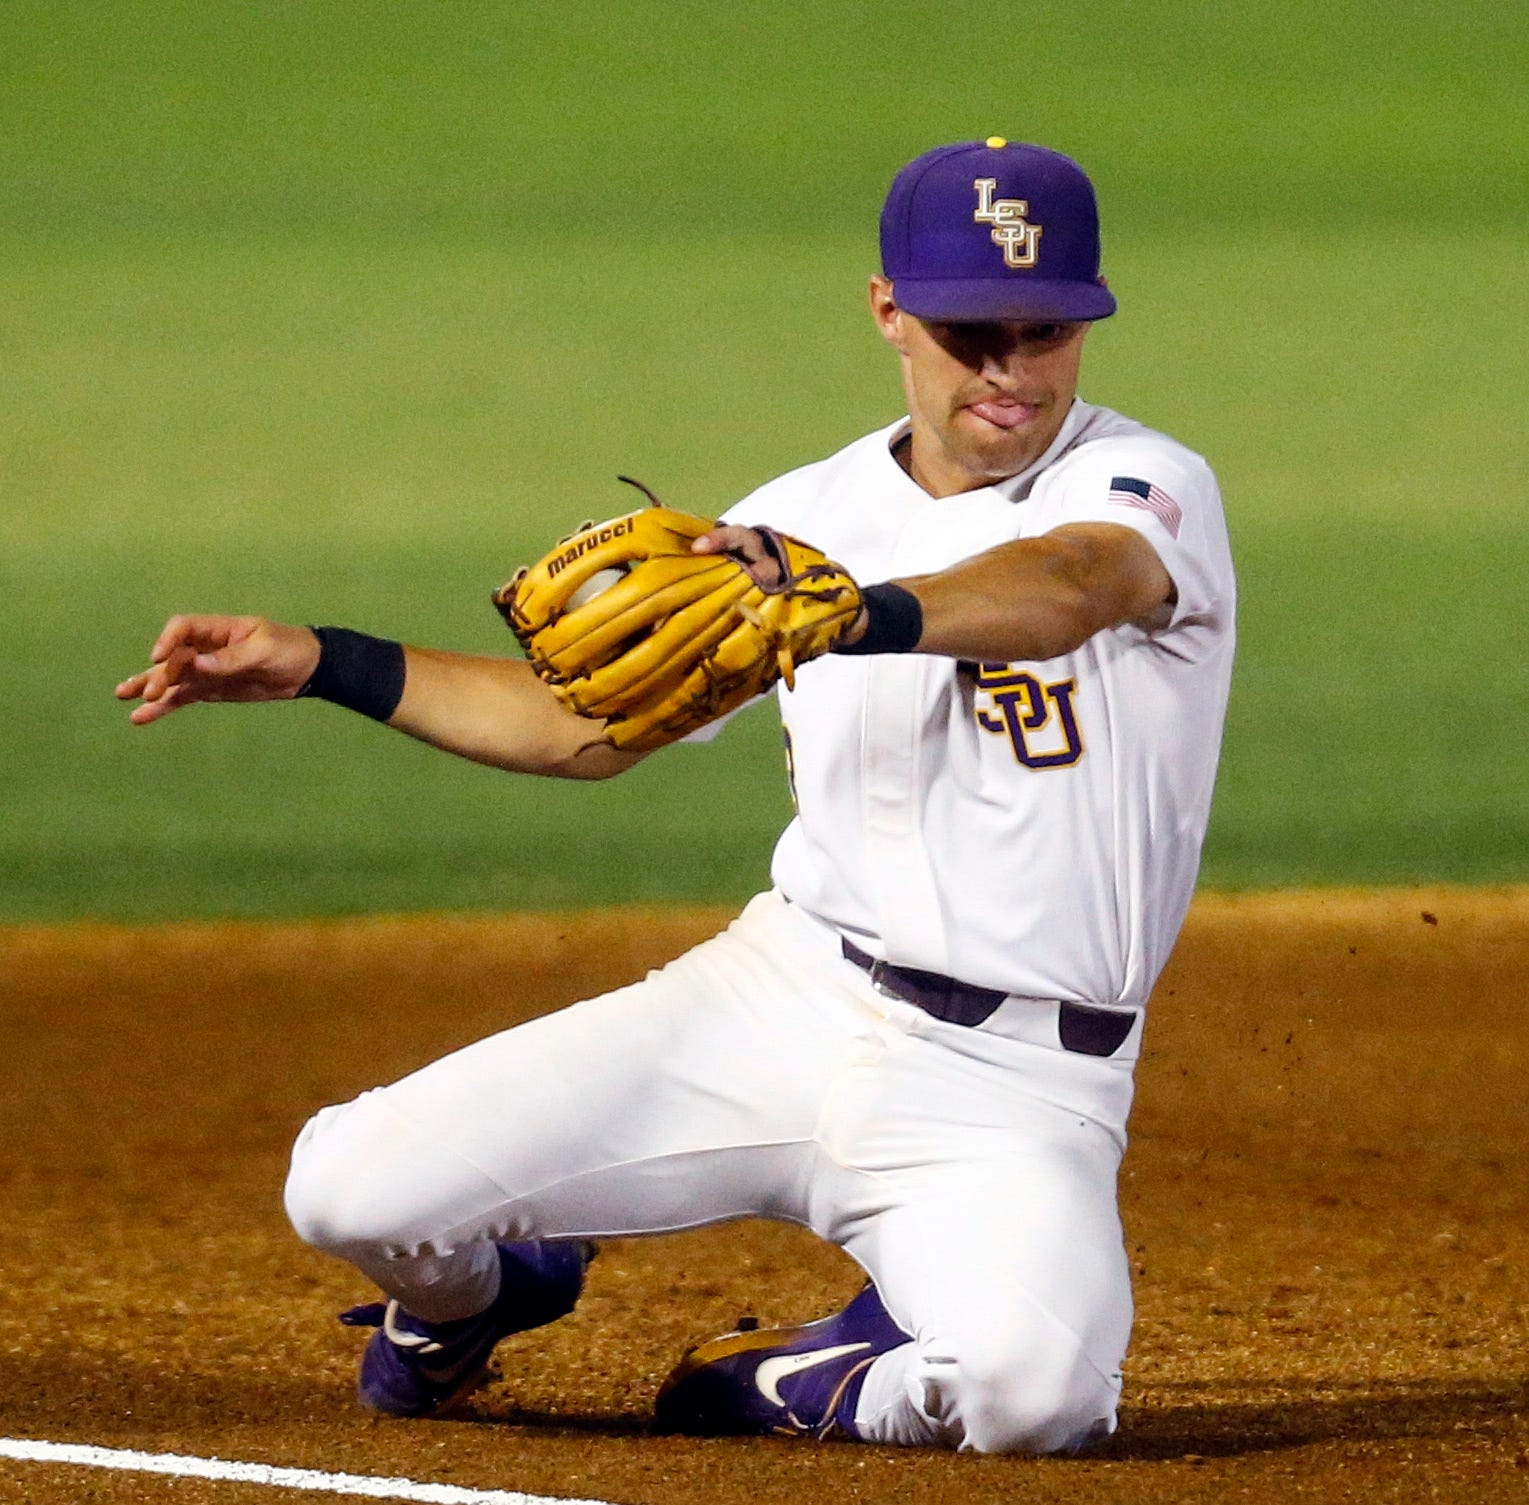 SEC Baseball Tournament 2019: How to watch LSU vs. Vanderbilt on TV, live stream